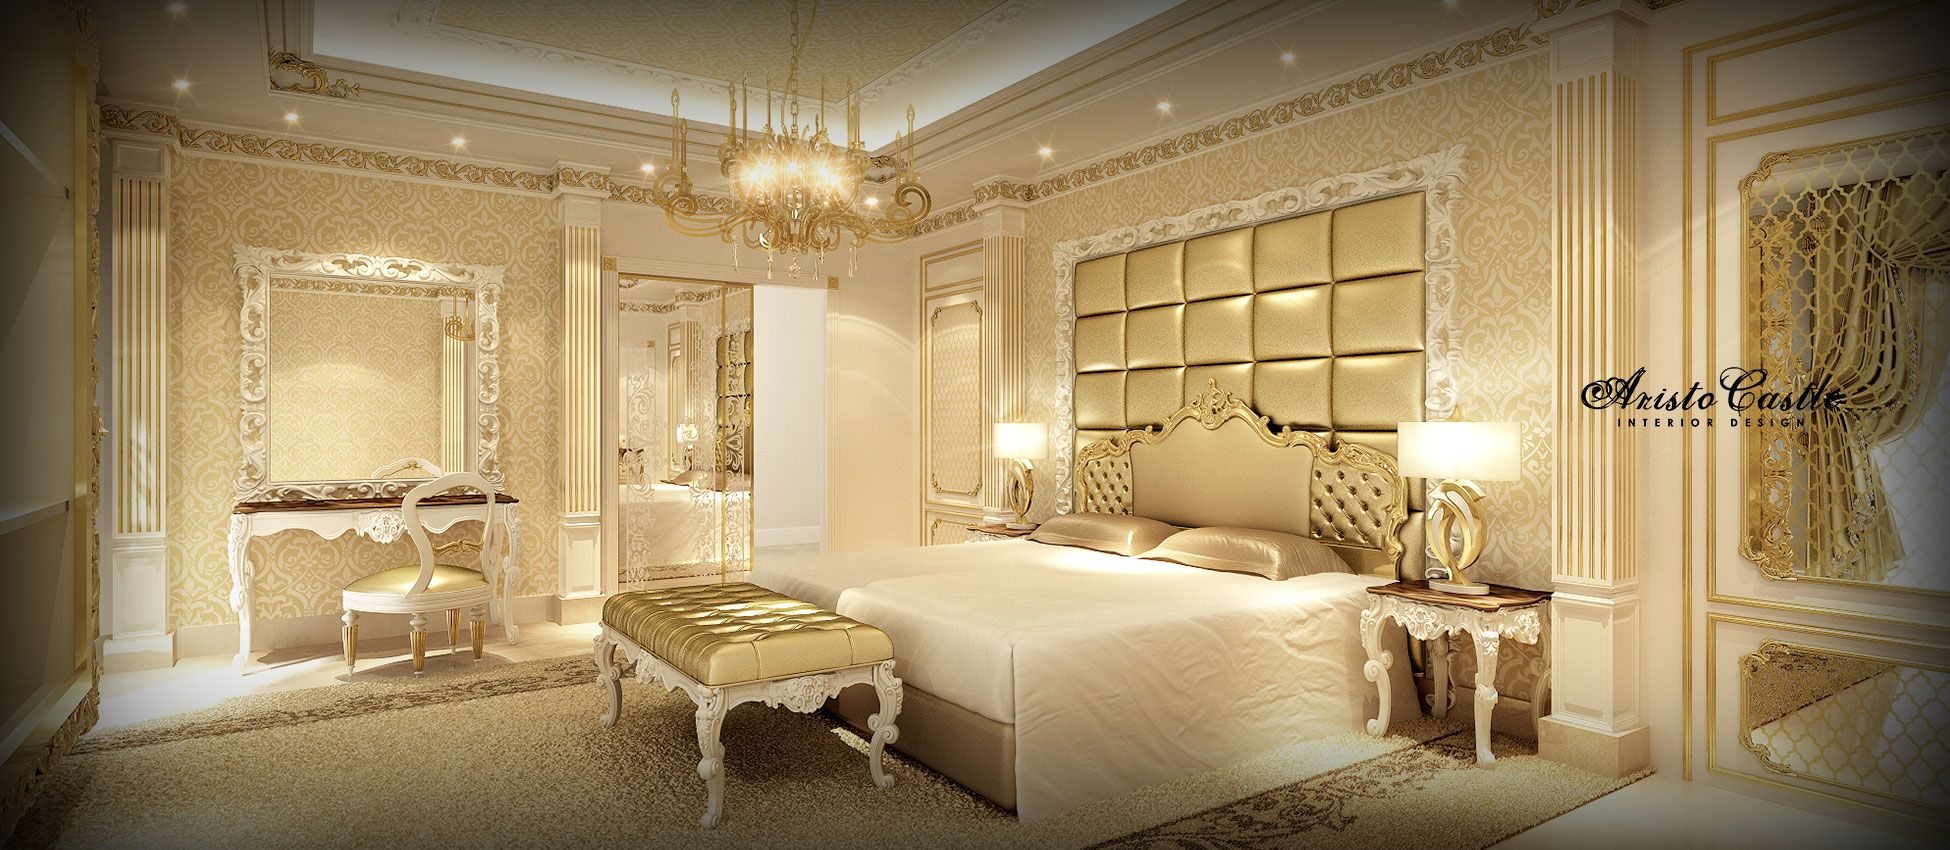 Dubai luxury interior design luxury master bedroom for Luxury bedroom inspiration